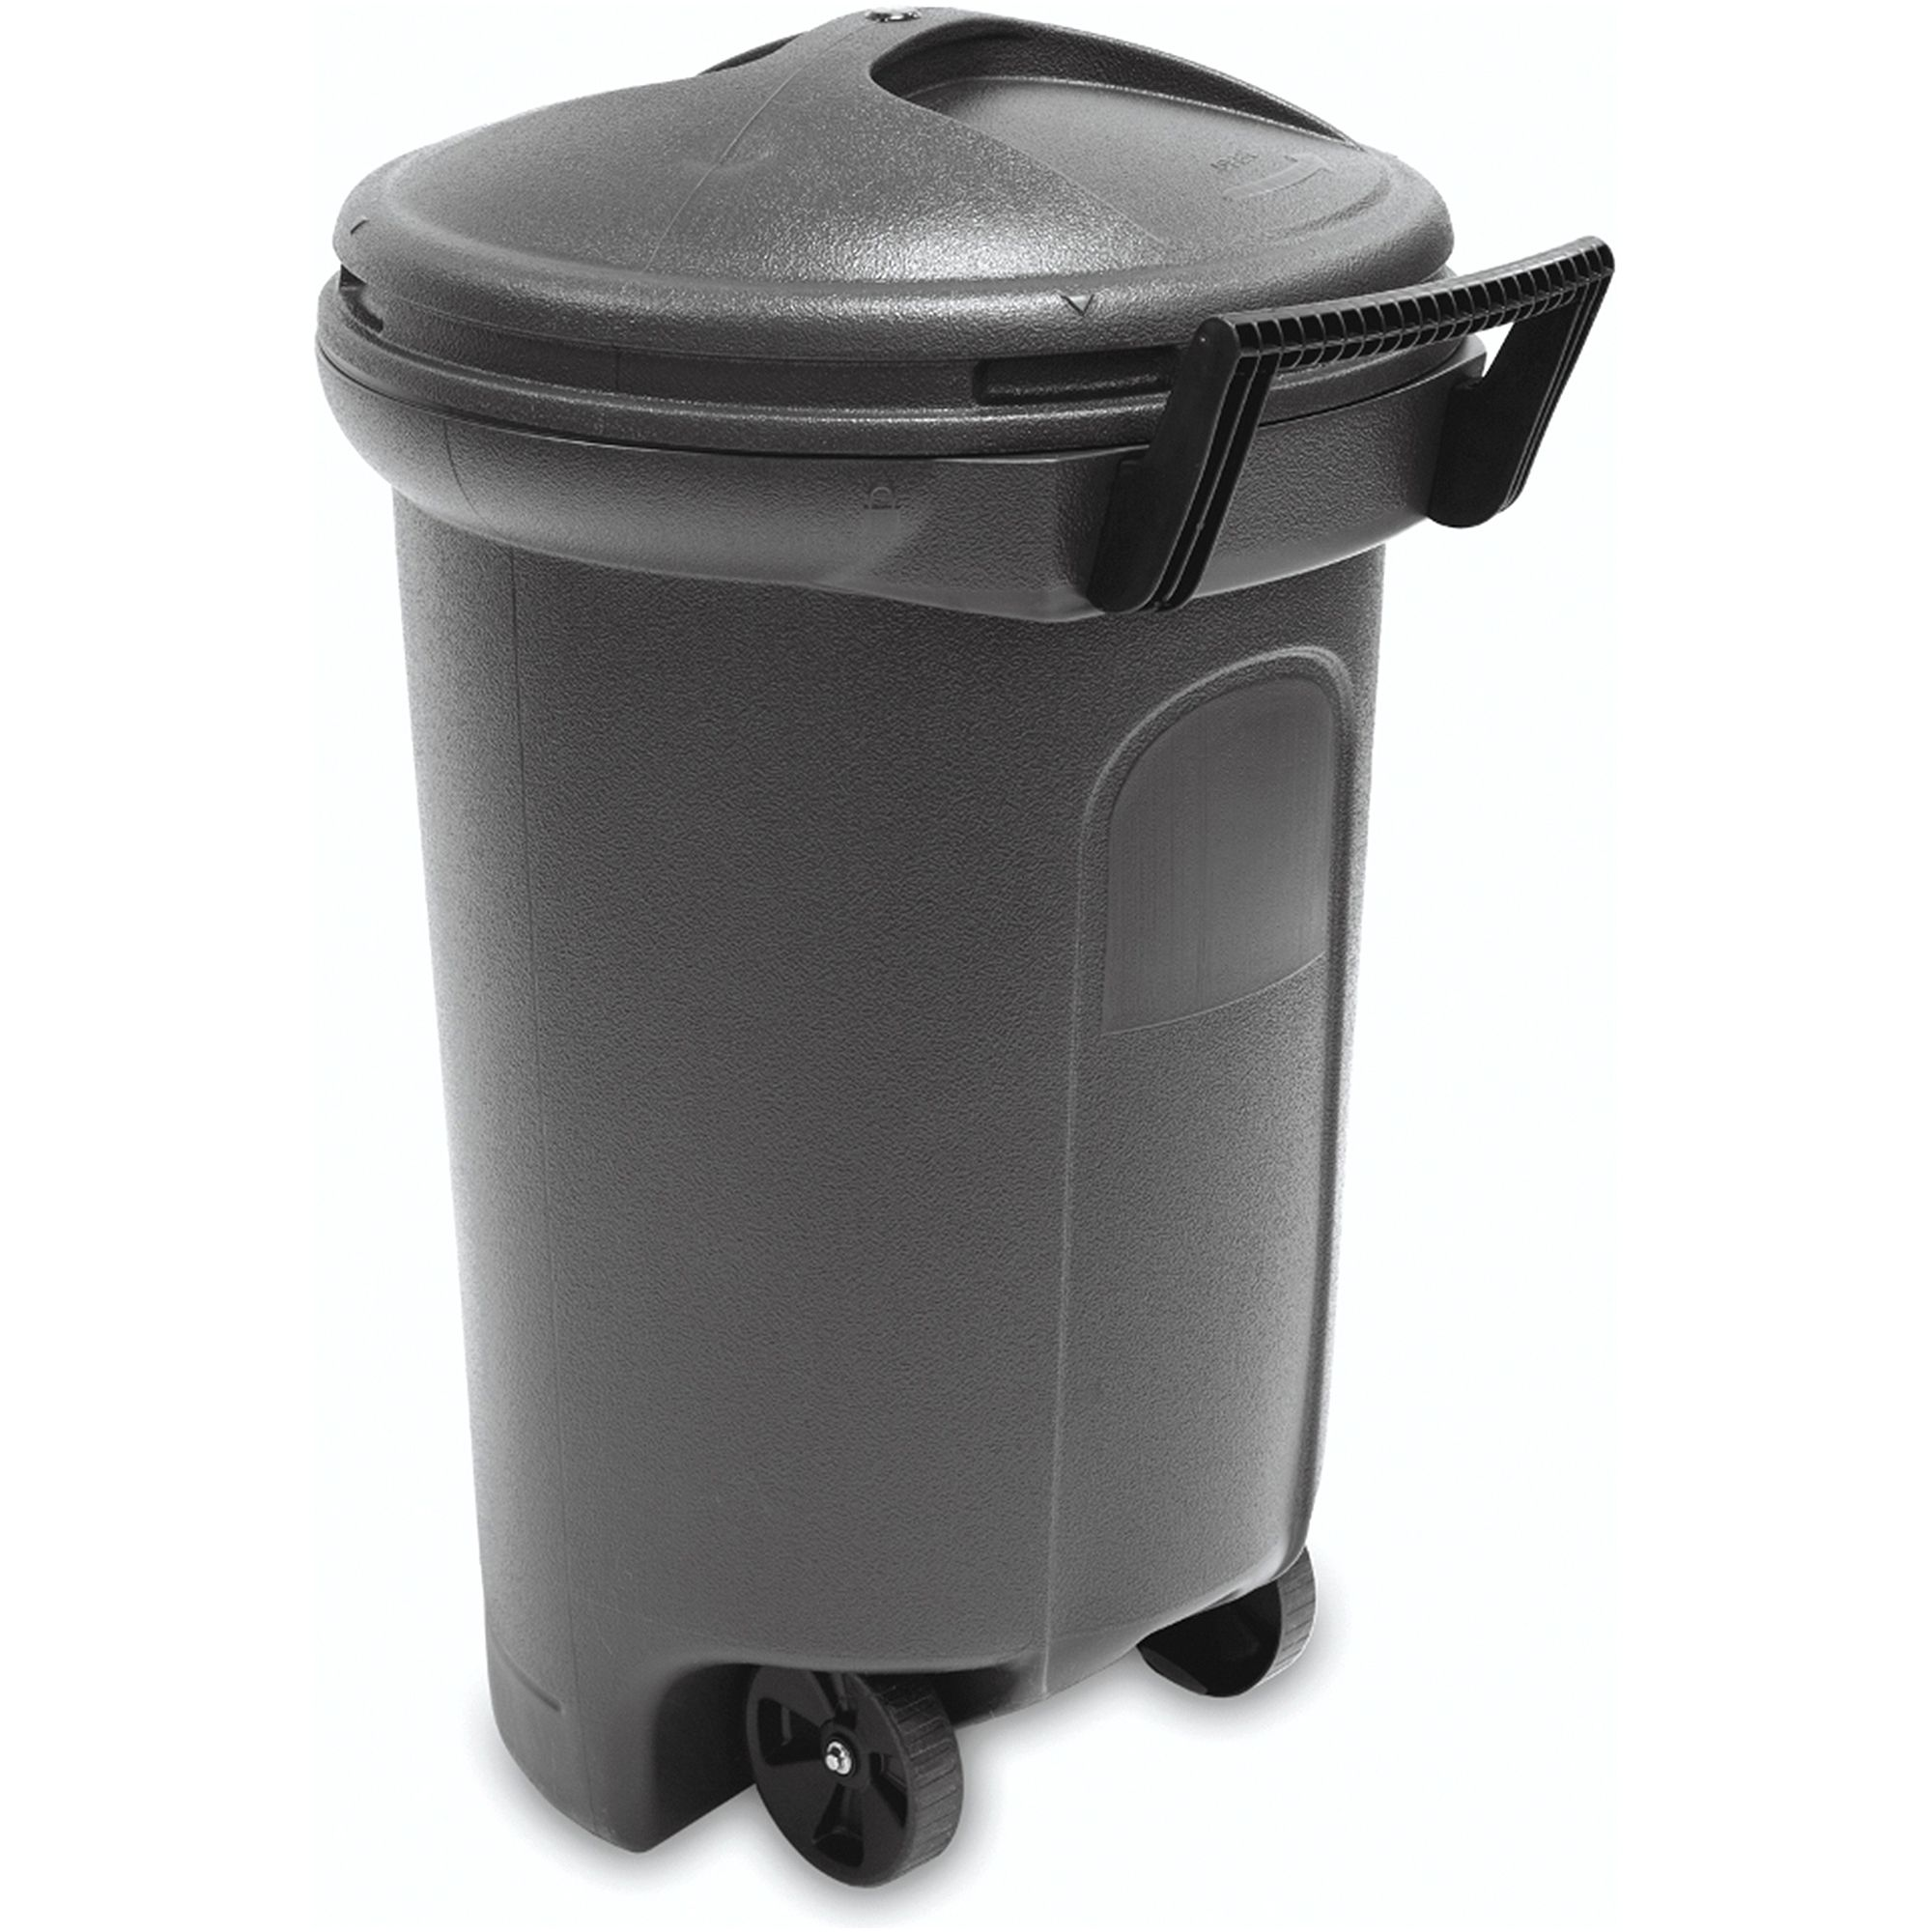 Walmart Outdoor Trash Cans Fair Outside Trash Cans With Wheels  Useful Itemsneeds  Pinterest  Wheels Review